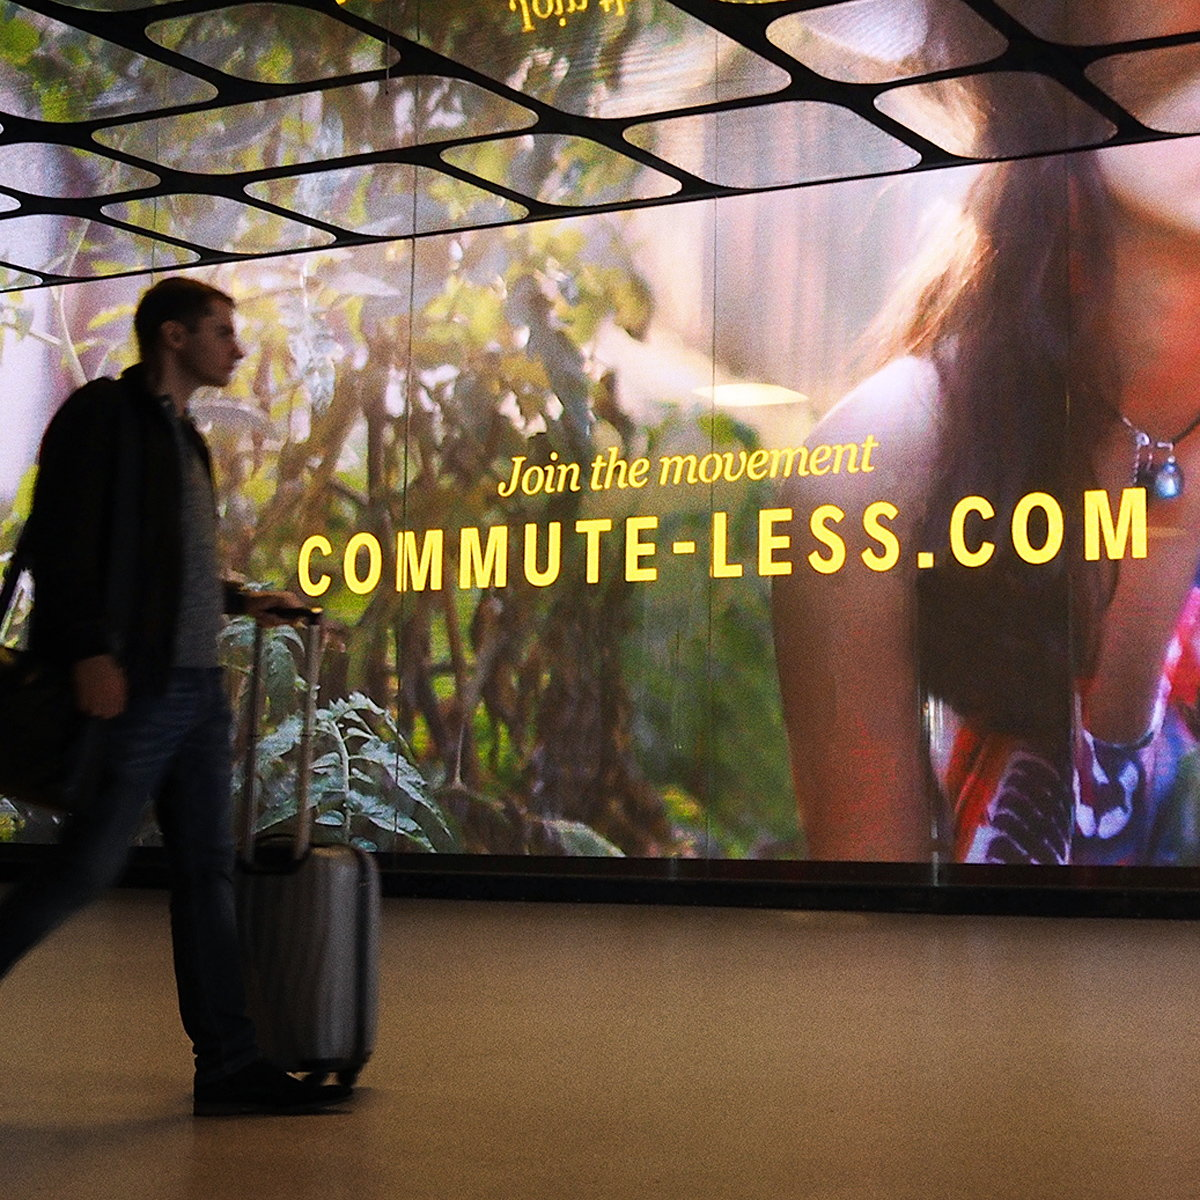 #Commuteless - The Movement for Living More